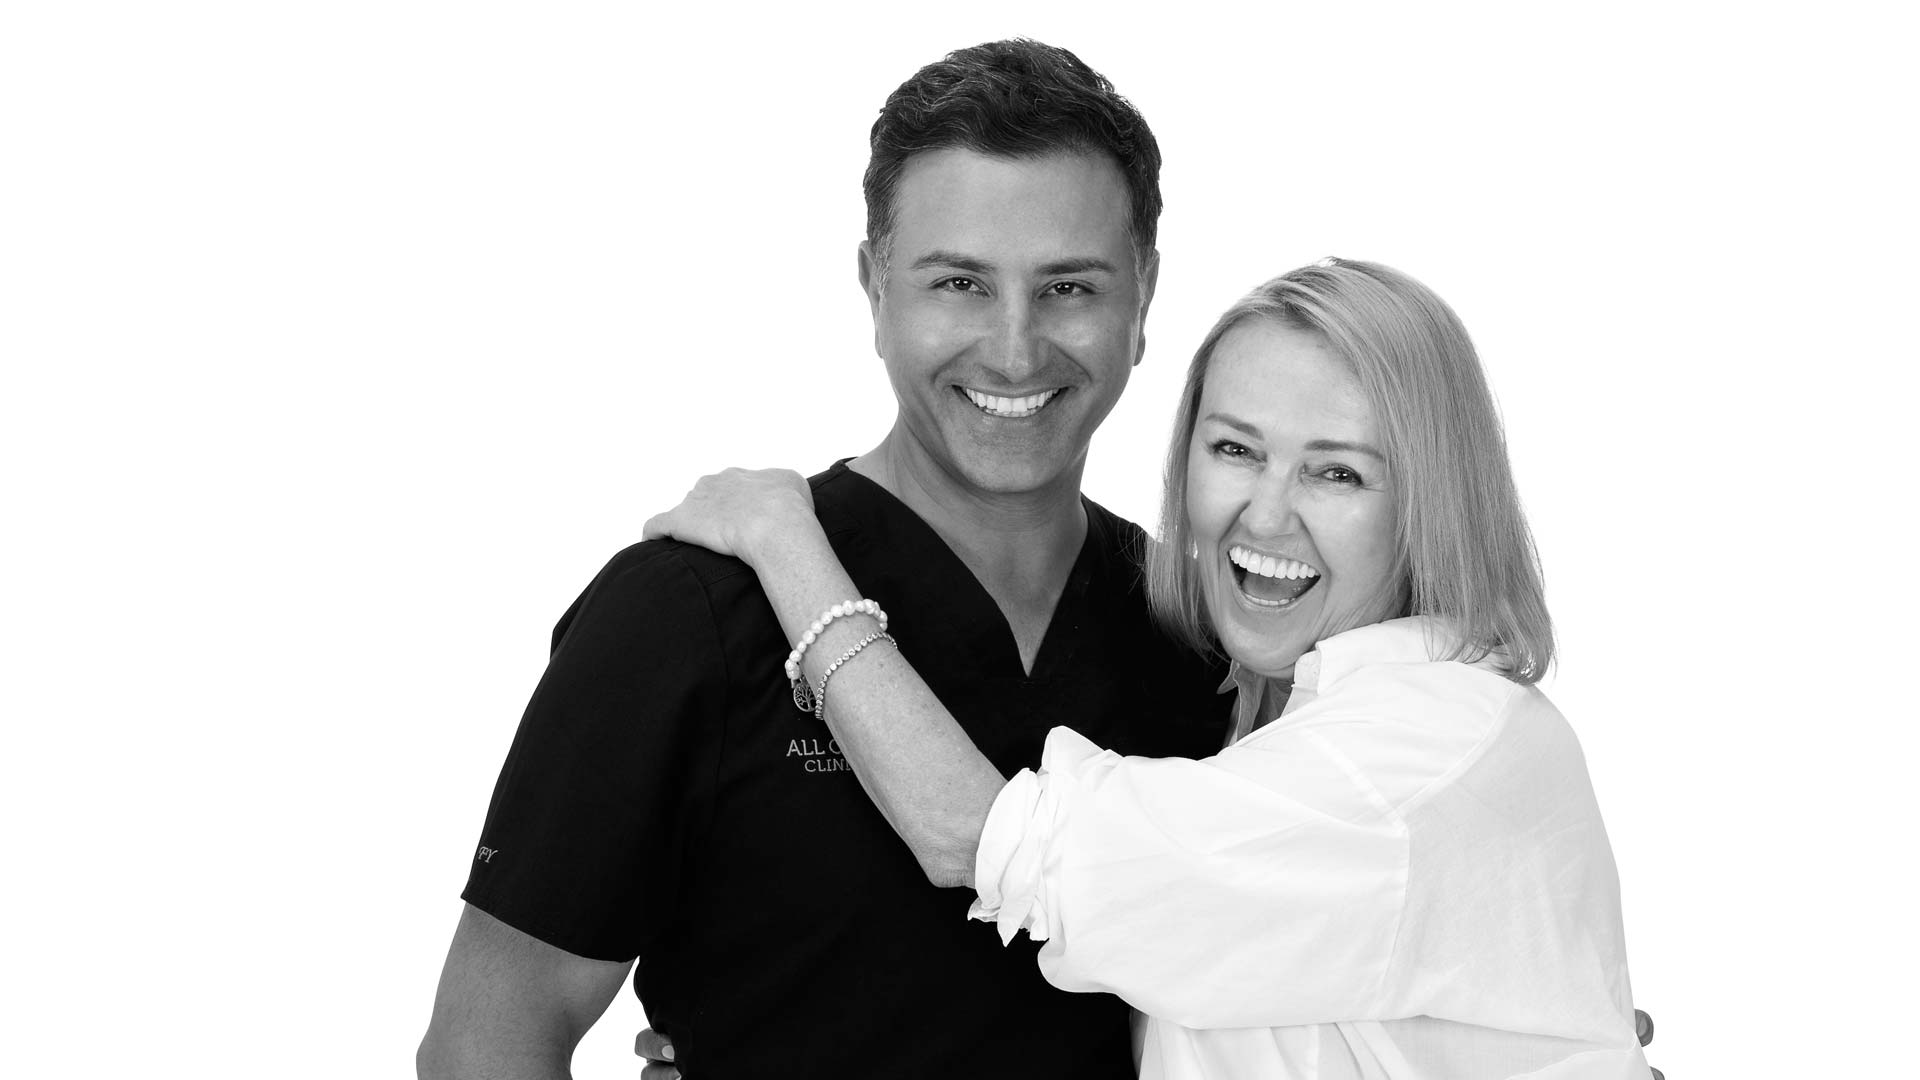 All on 4 dental implant dentist Dr Fadi Yassmin smiling next to a patient.